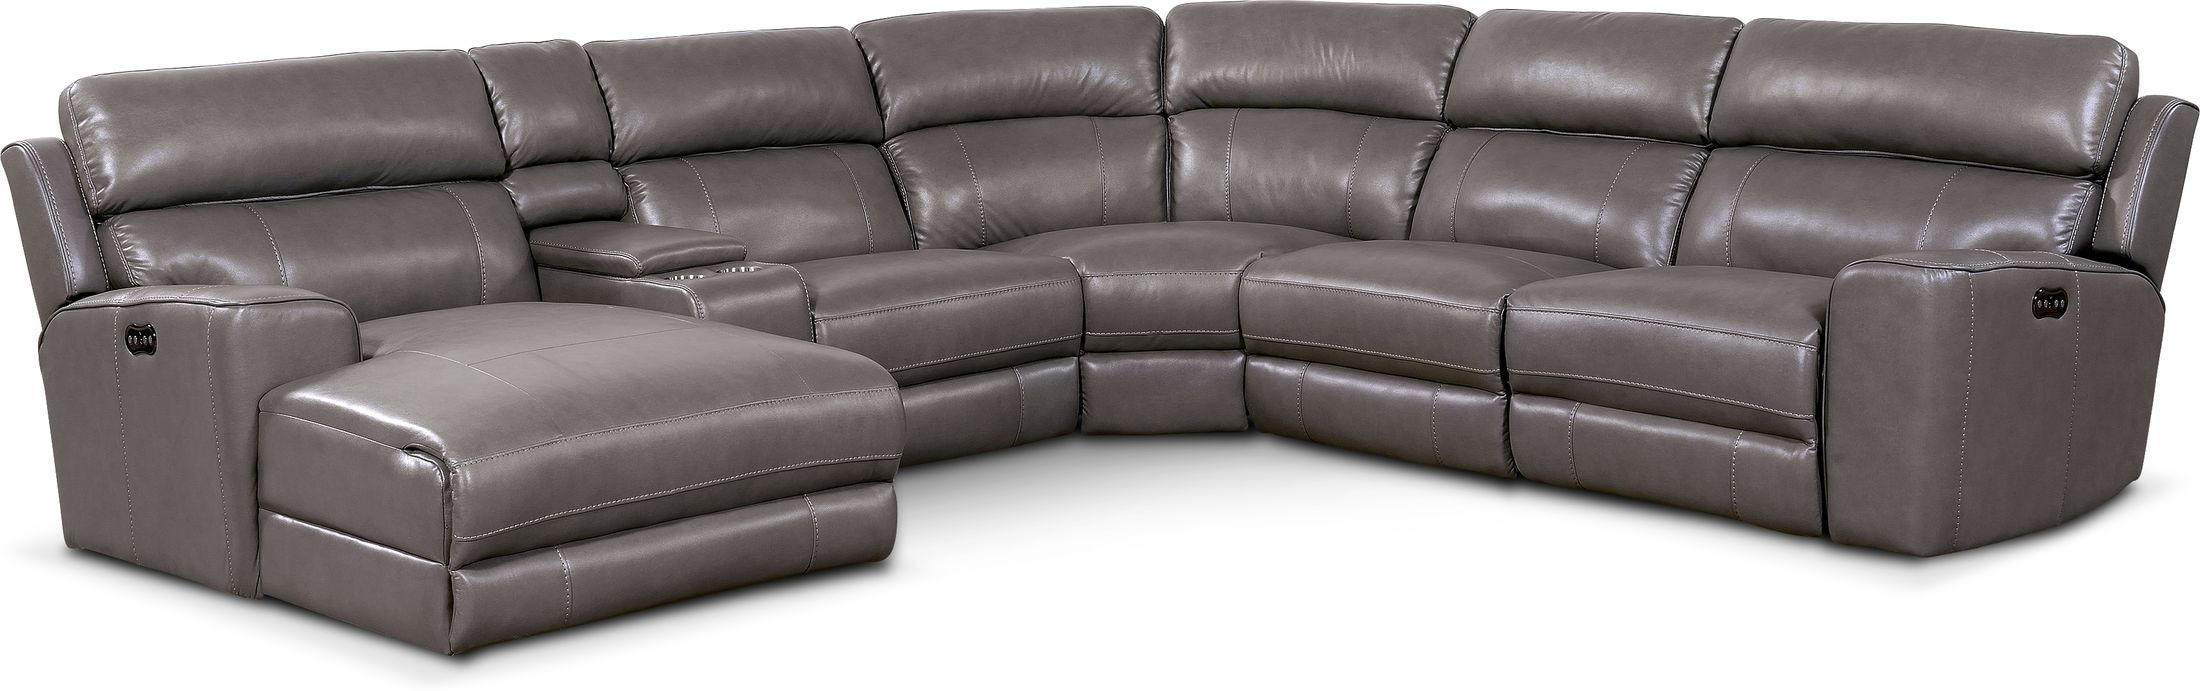 Living Room Furniture - Newport 6-Piece Dual-Power Reclining Sectional with Chaise and 2 Reclining Seats